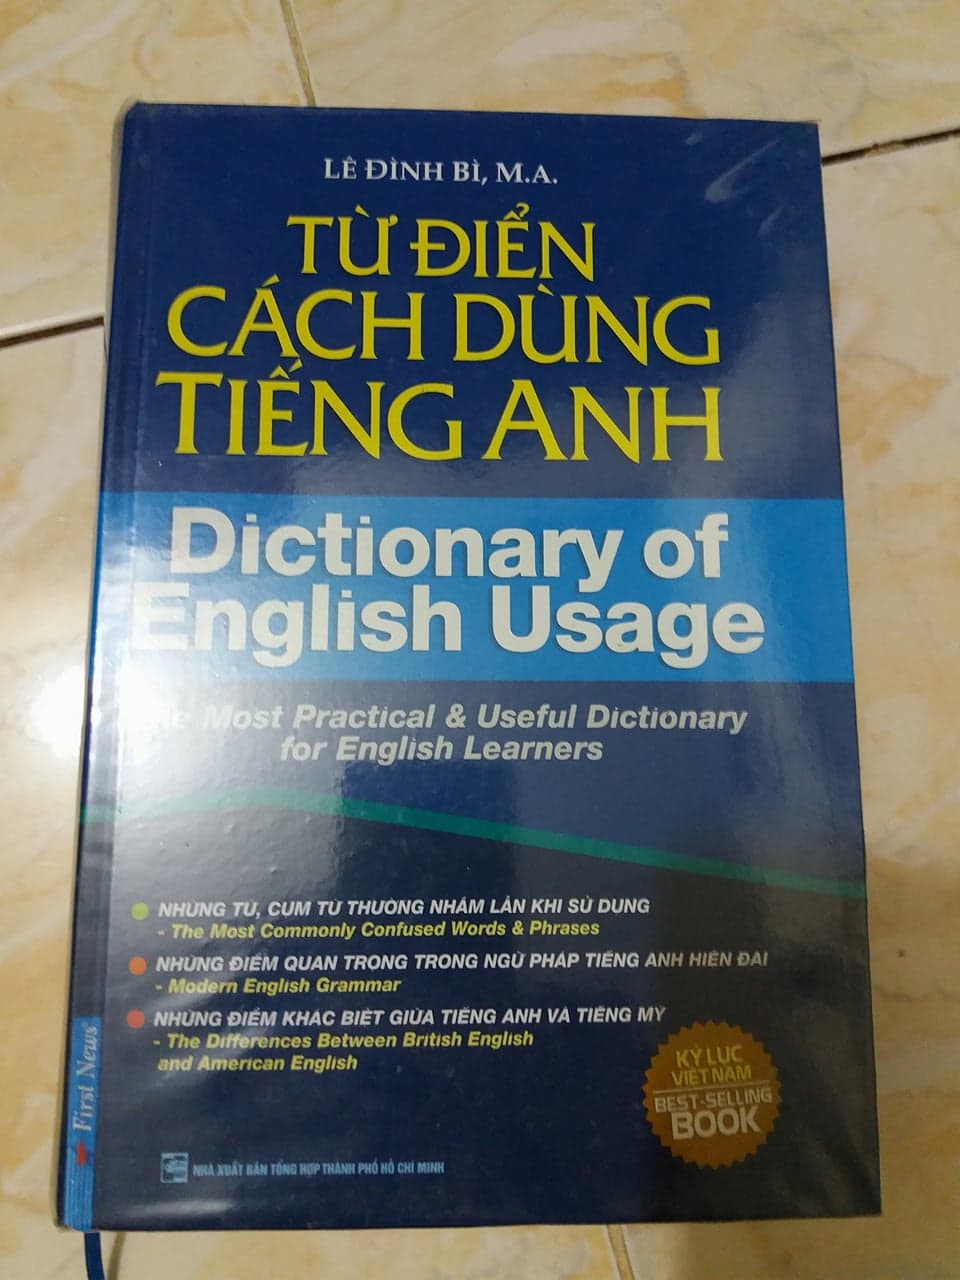 Dictionary of English Use